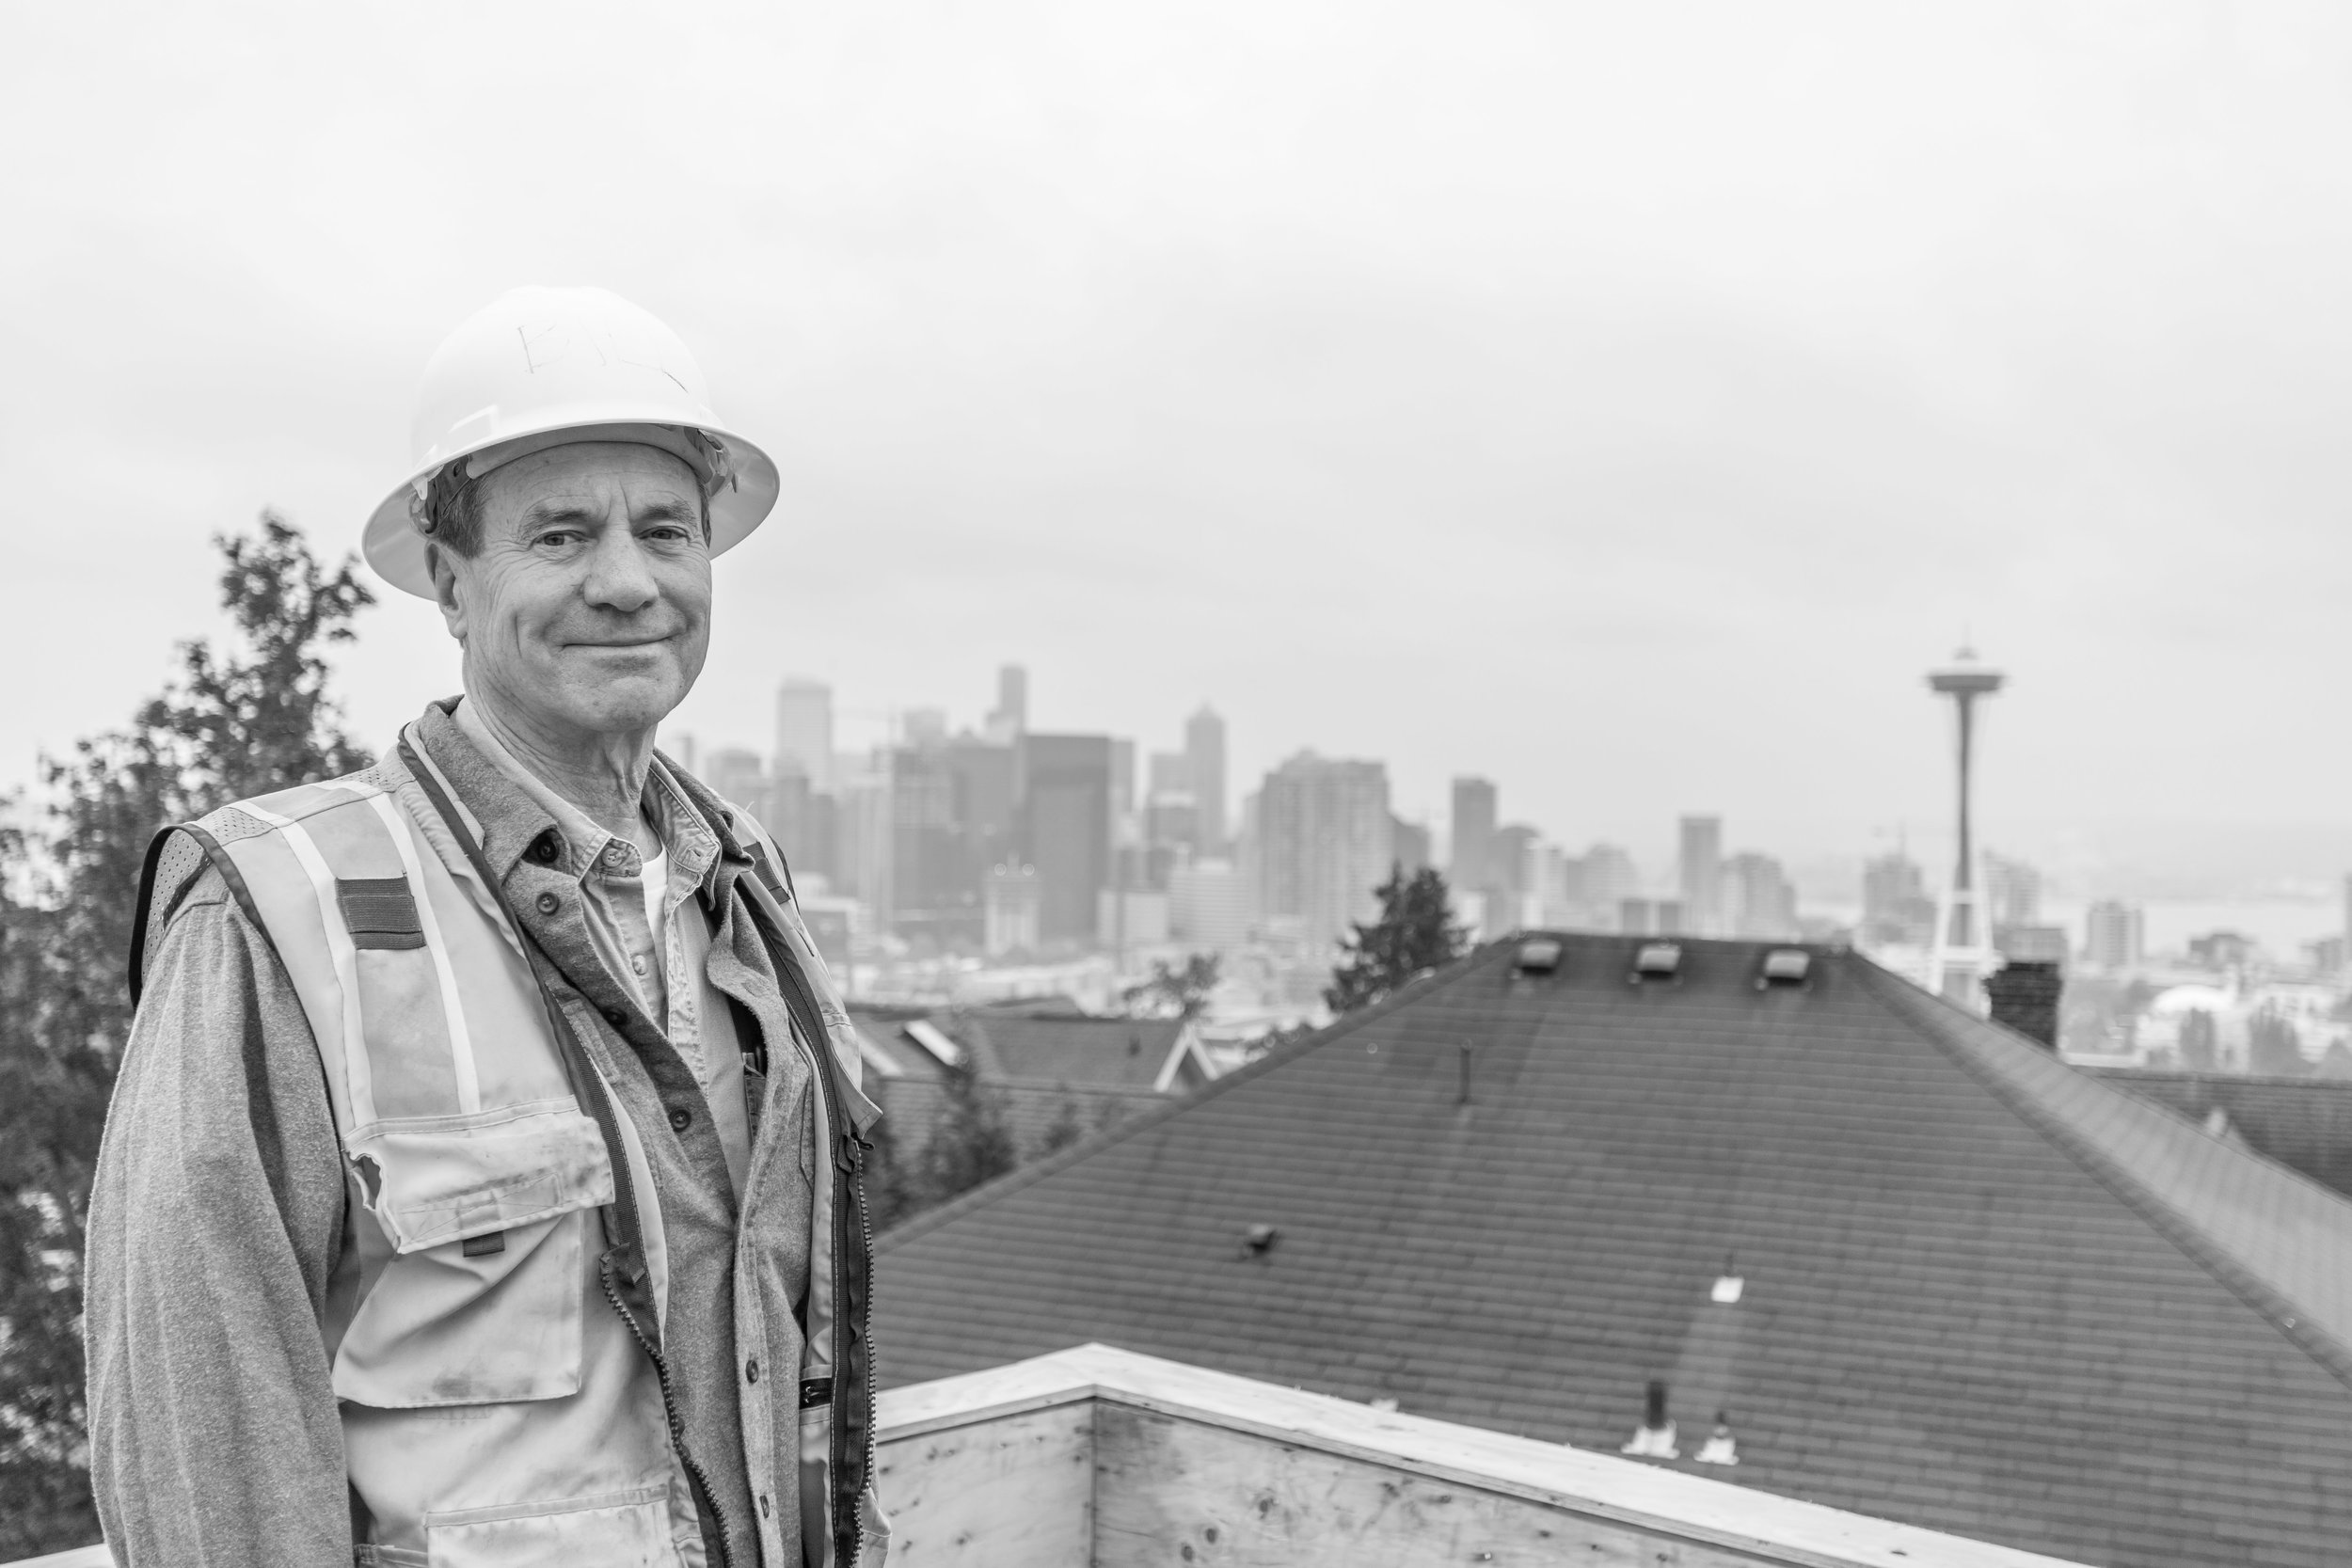 Bill Parks, Atop Lee Street Lofts During Construction